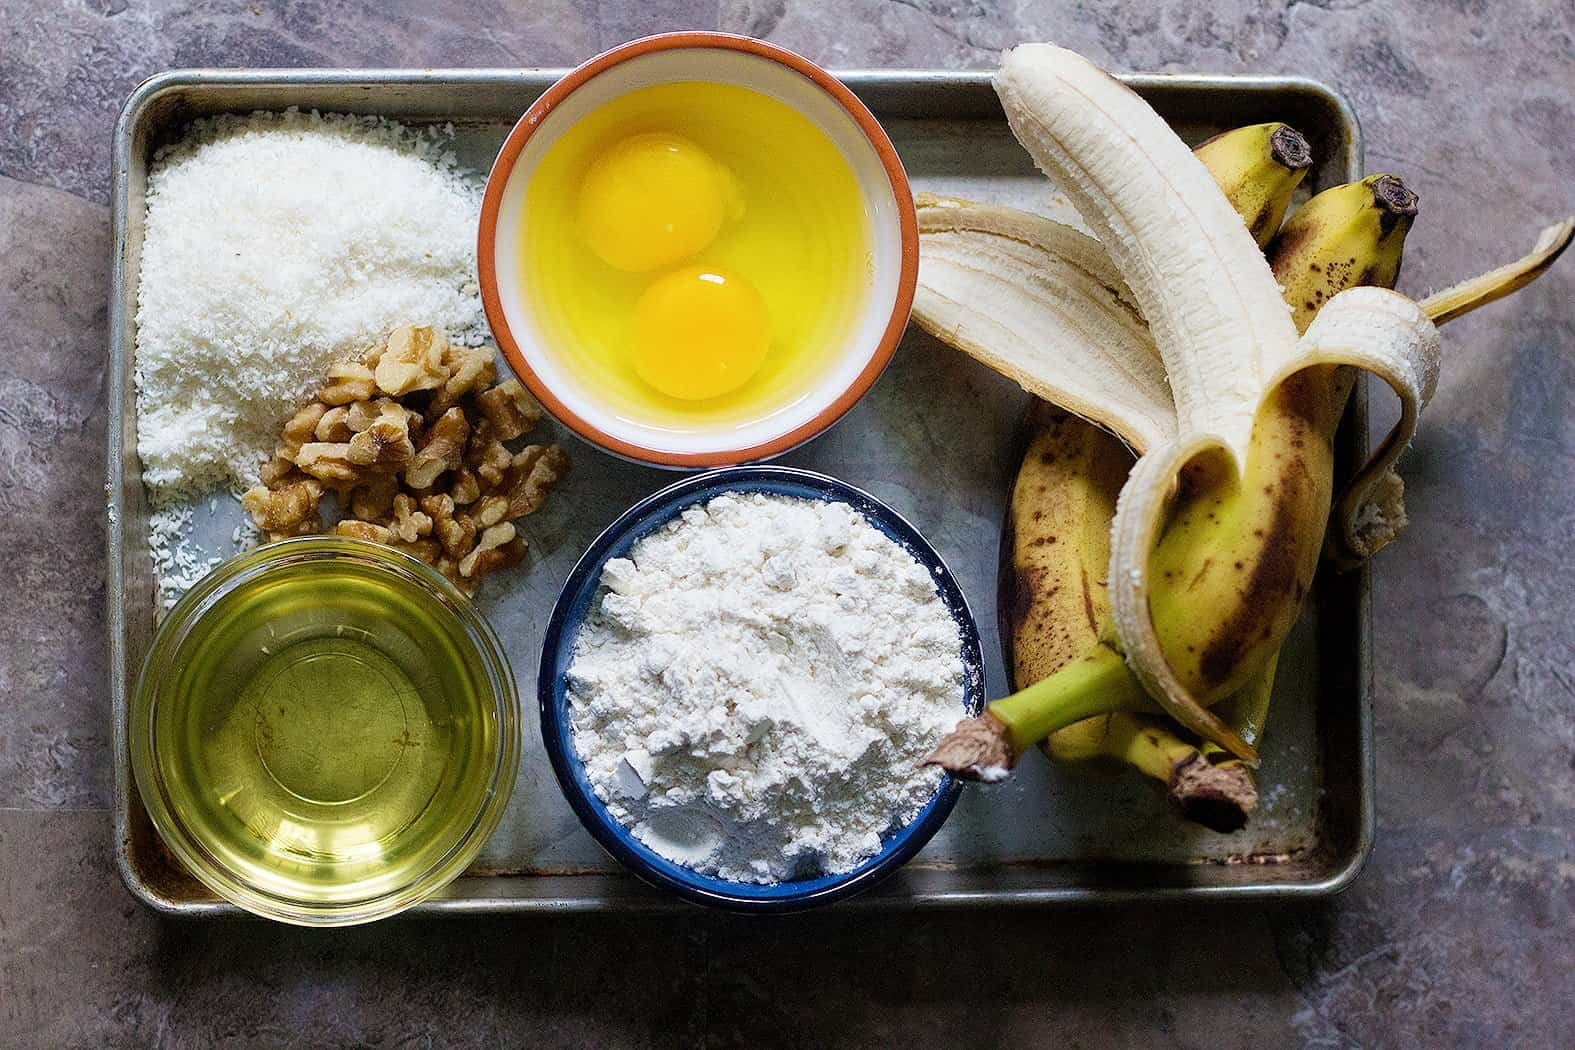 To make banana coconut bread you need bananas, eggs, coconut, flour, walnuts and vegetable oil.